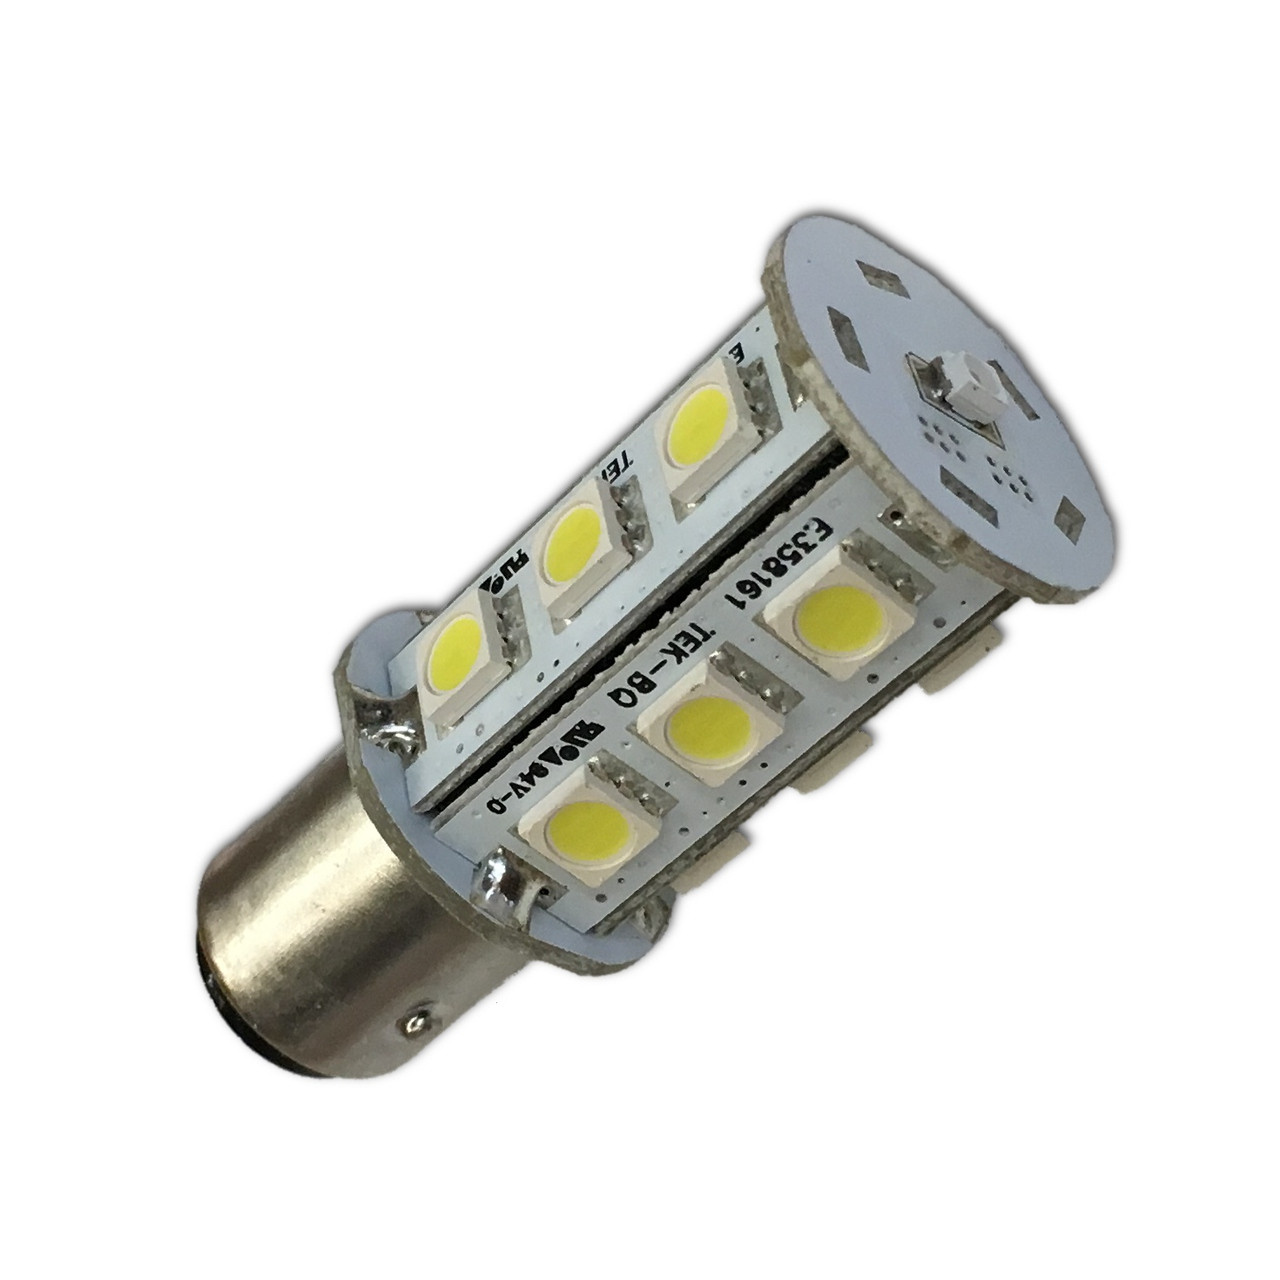 dusk to dawn photocell automatic anchor light led replacement bulb  [ 1280 x 1280 Pixel ]